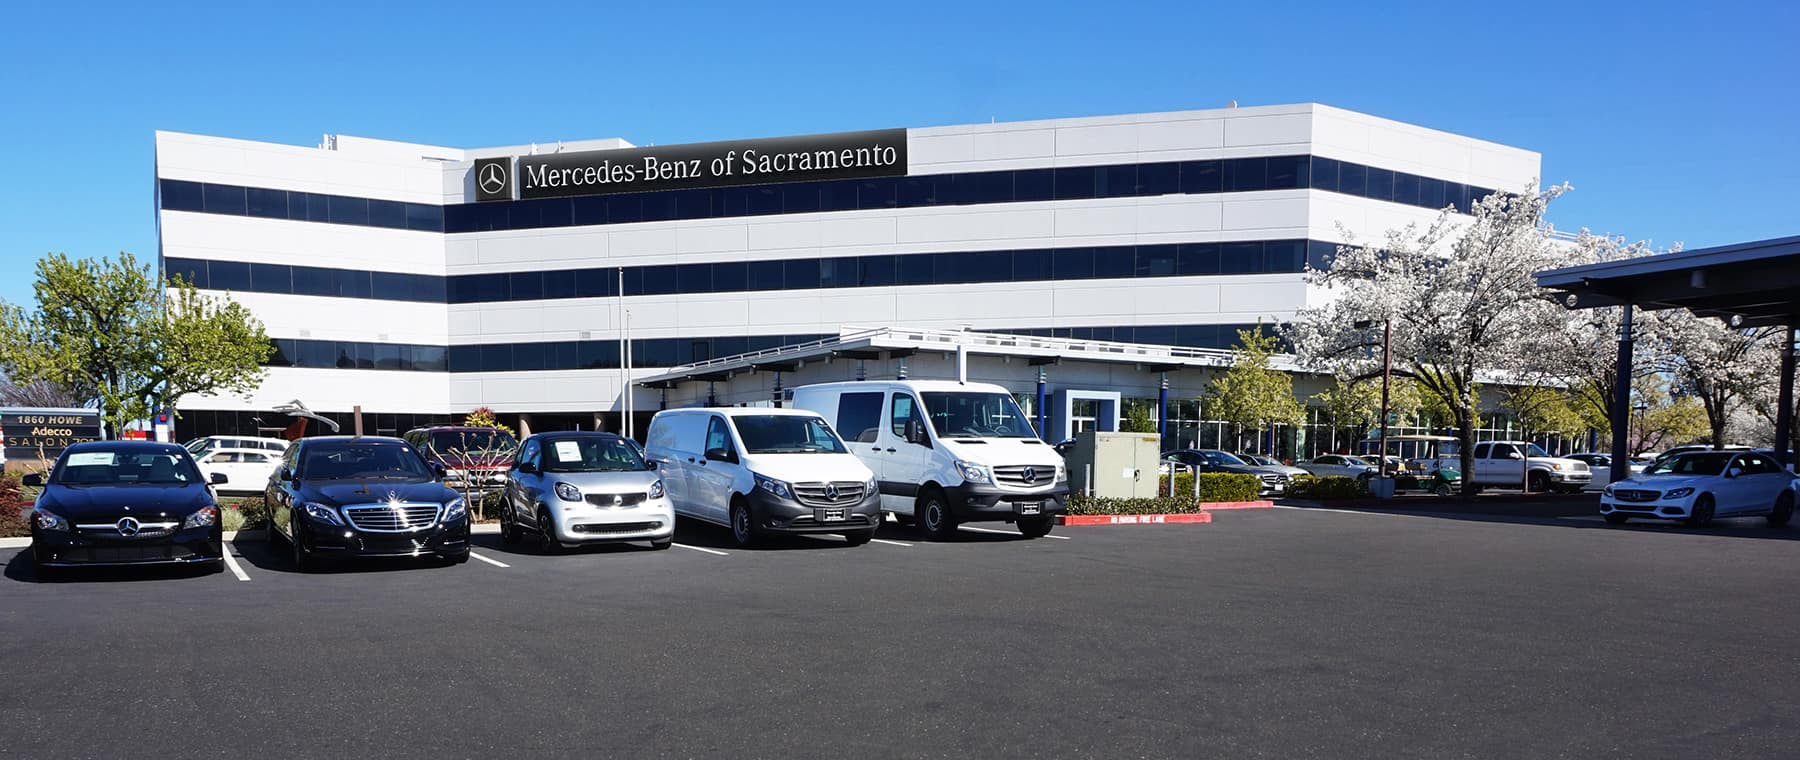 Mercedes-Benz of Sacramento | New and Pre-Owned Luxury Car